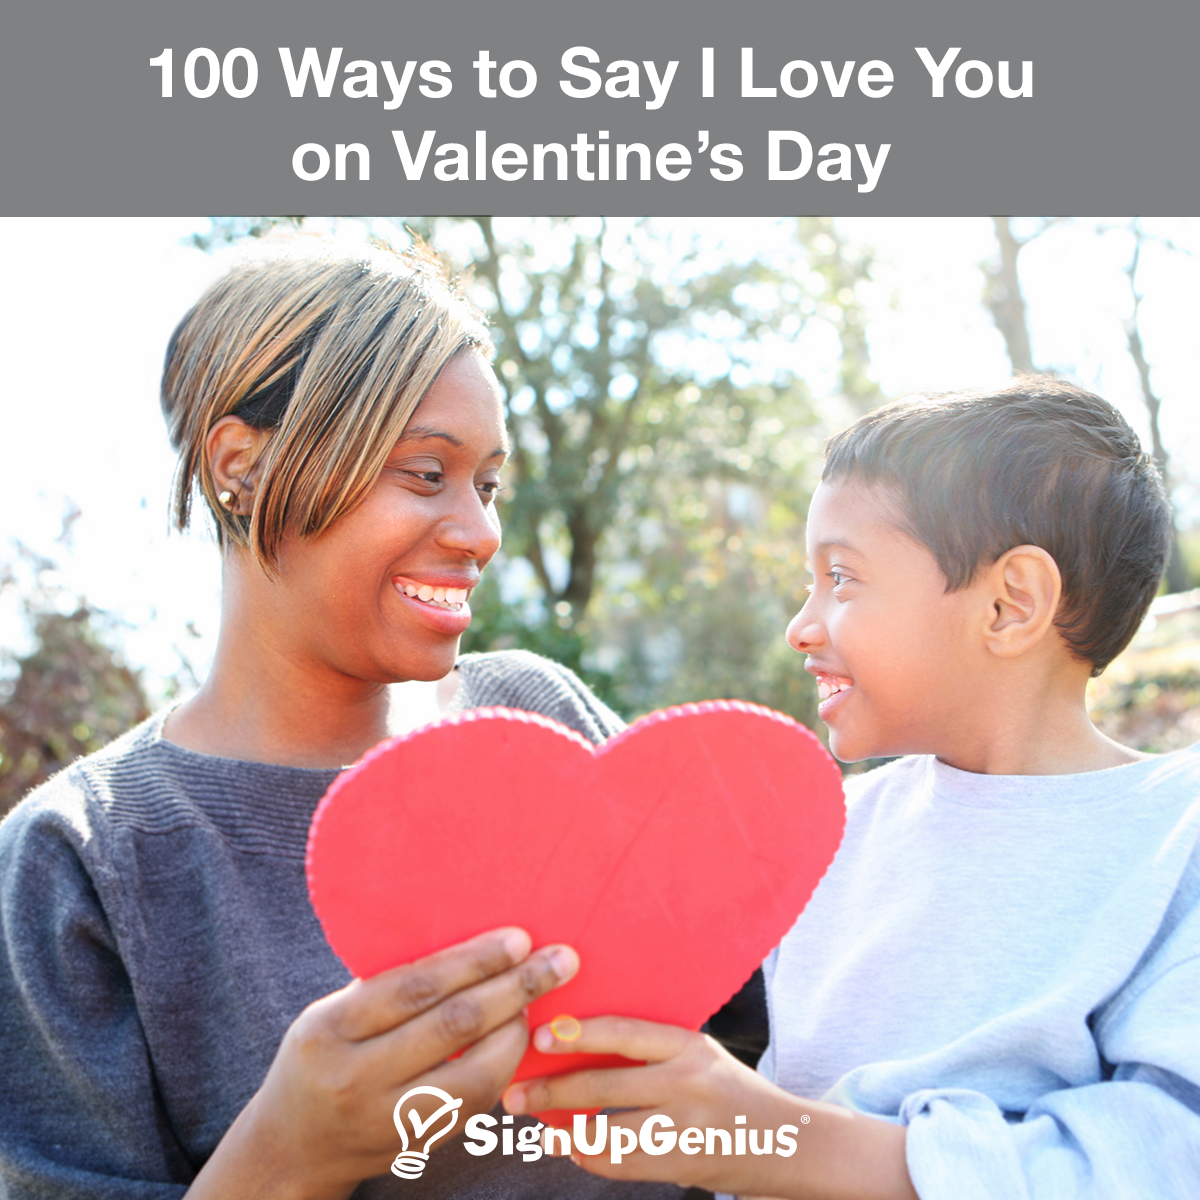 100 Ways to Say I Love You on Valentine's Day 100 Ways to Say I Love You on Valentine's Day. Show acts of kindness to your family, children, spouse and friends.